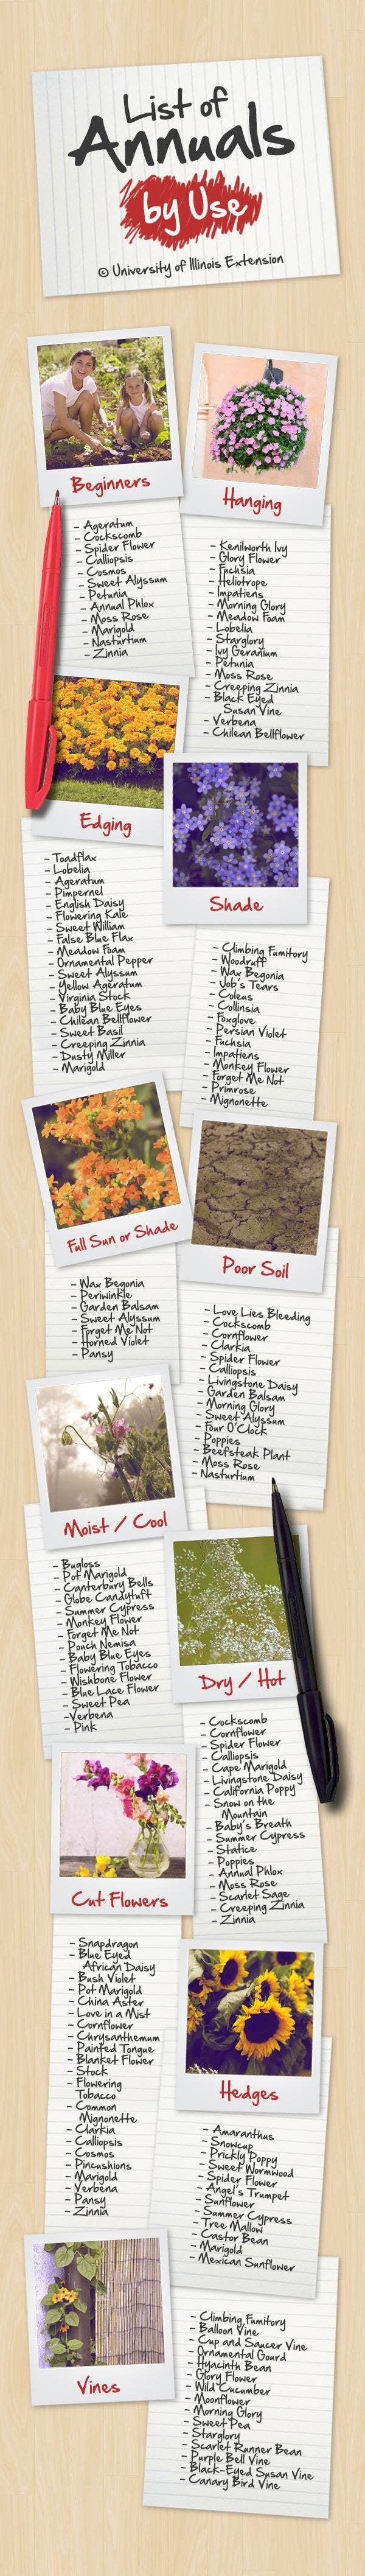 Here's a list of how you can use annuals (plants that you need to replant every year) in your garden.